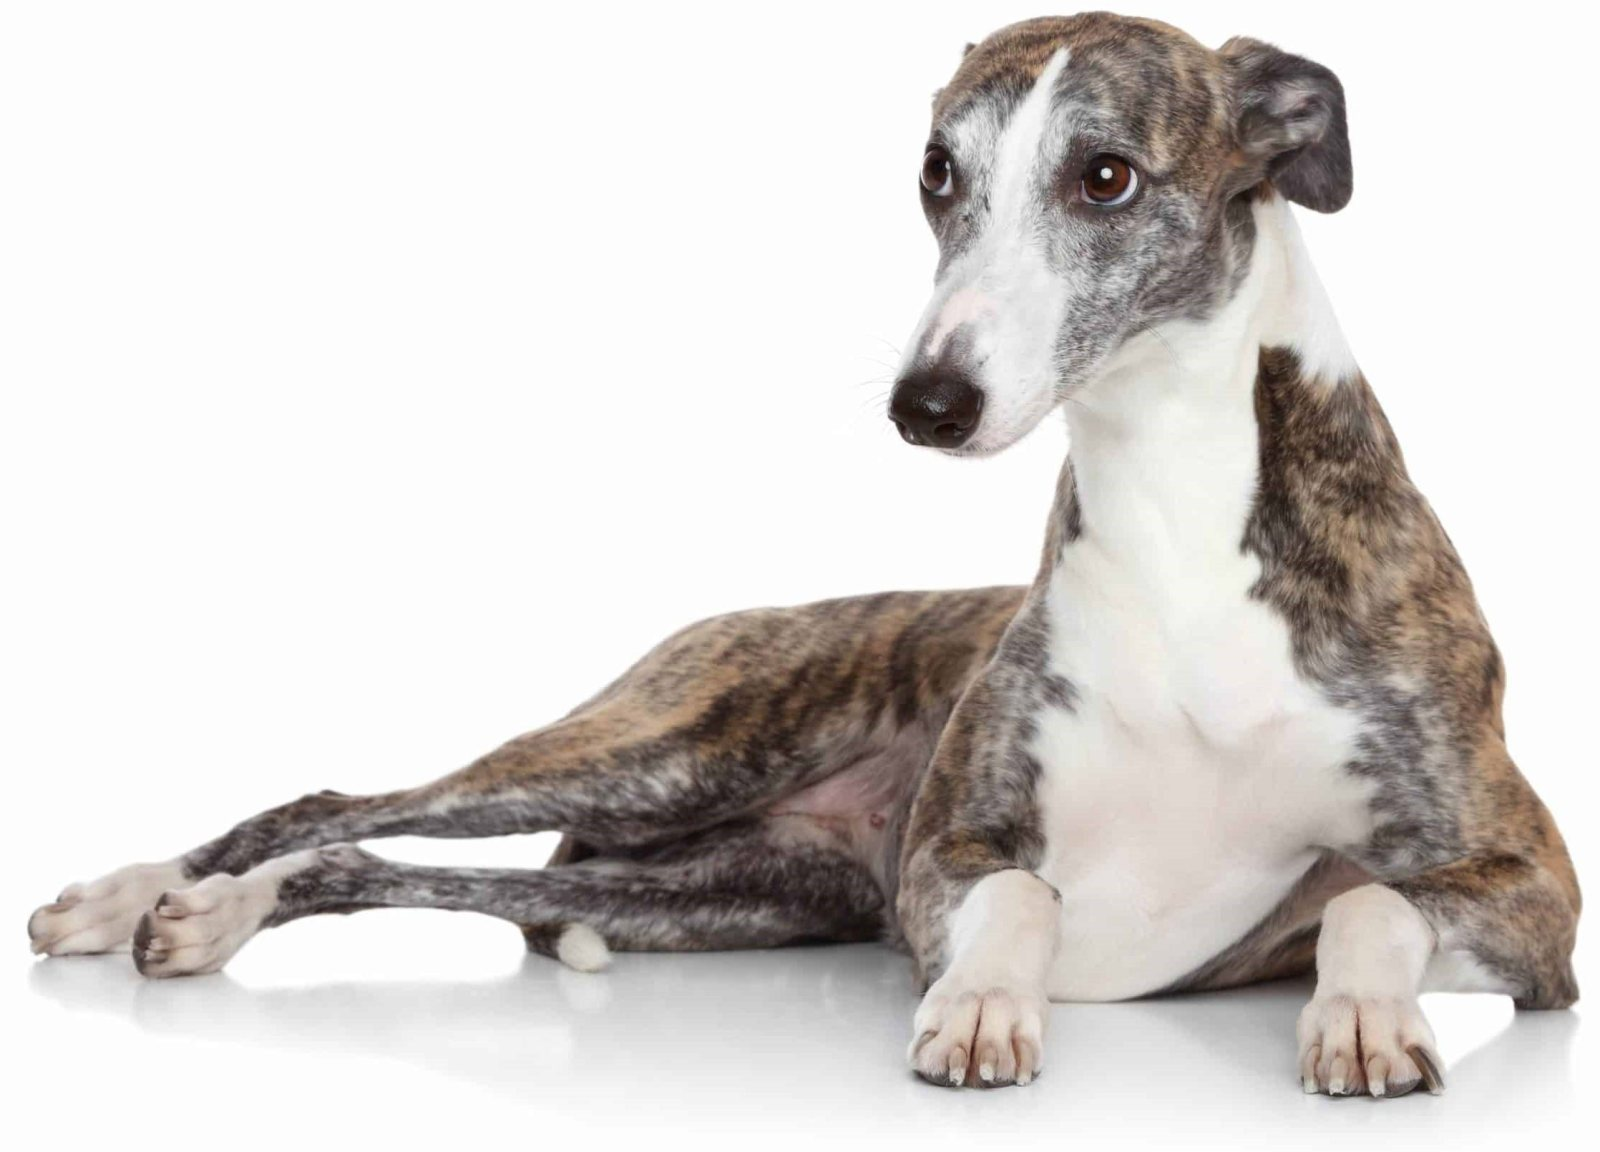 Italian Greyhound General Appearance